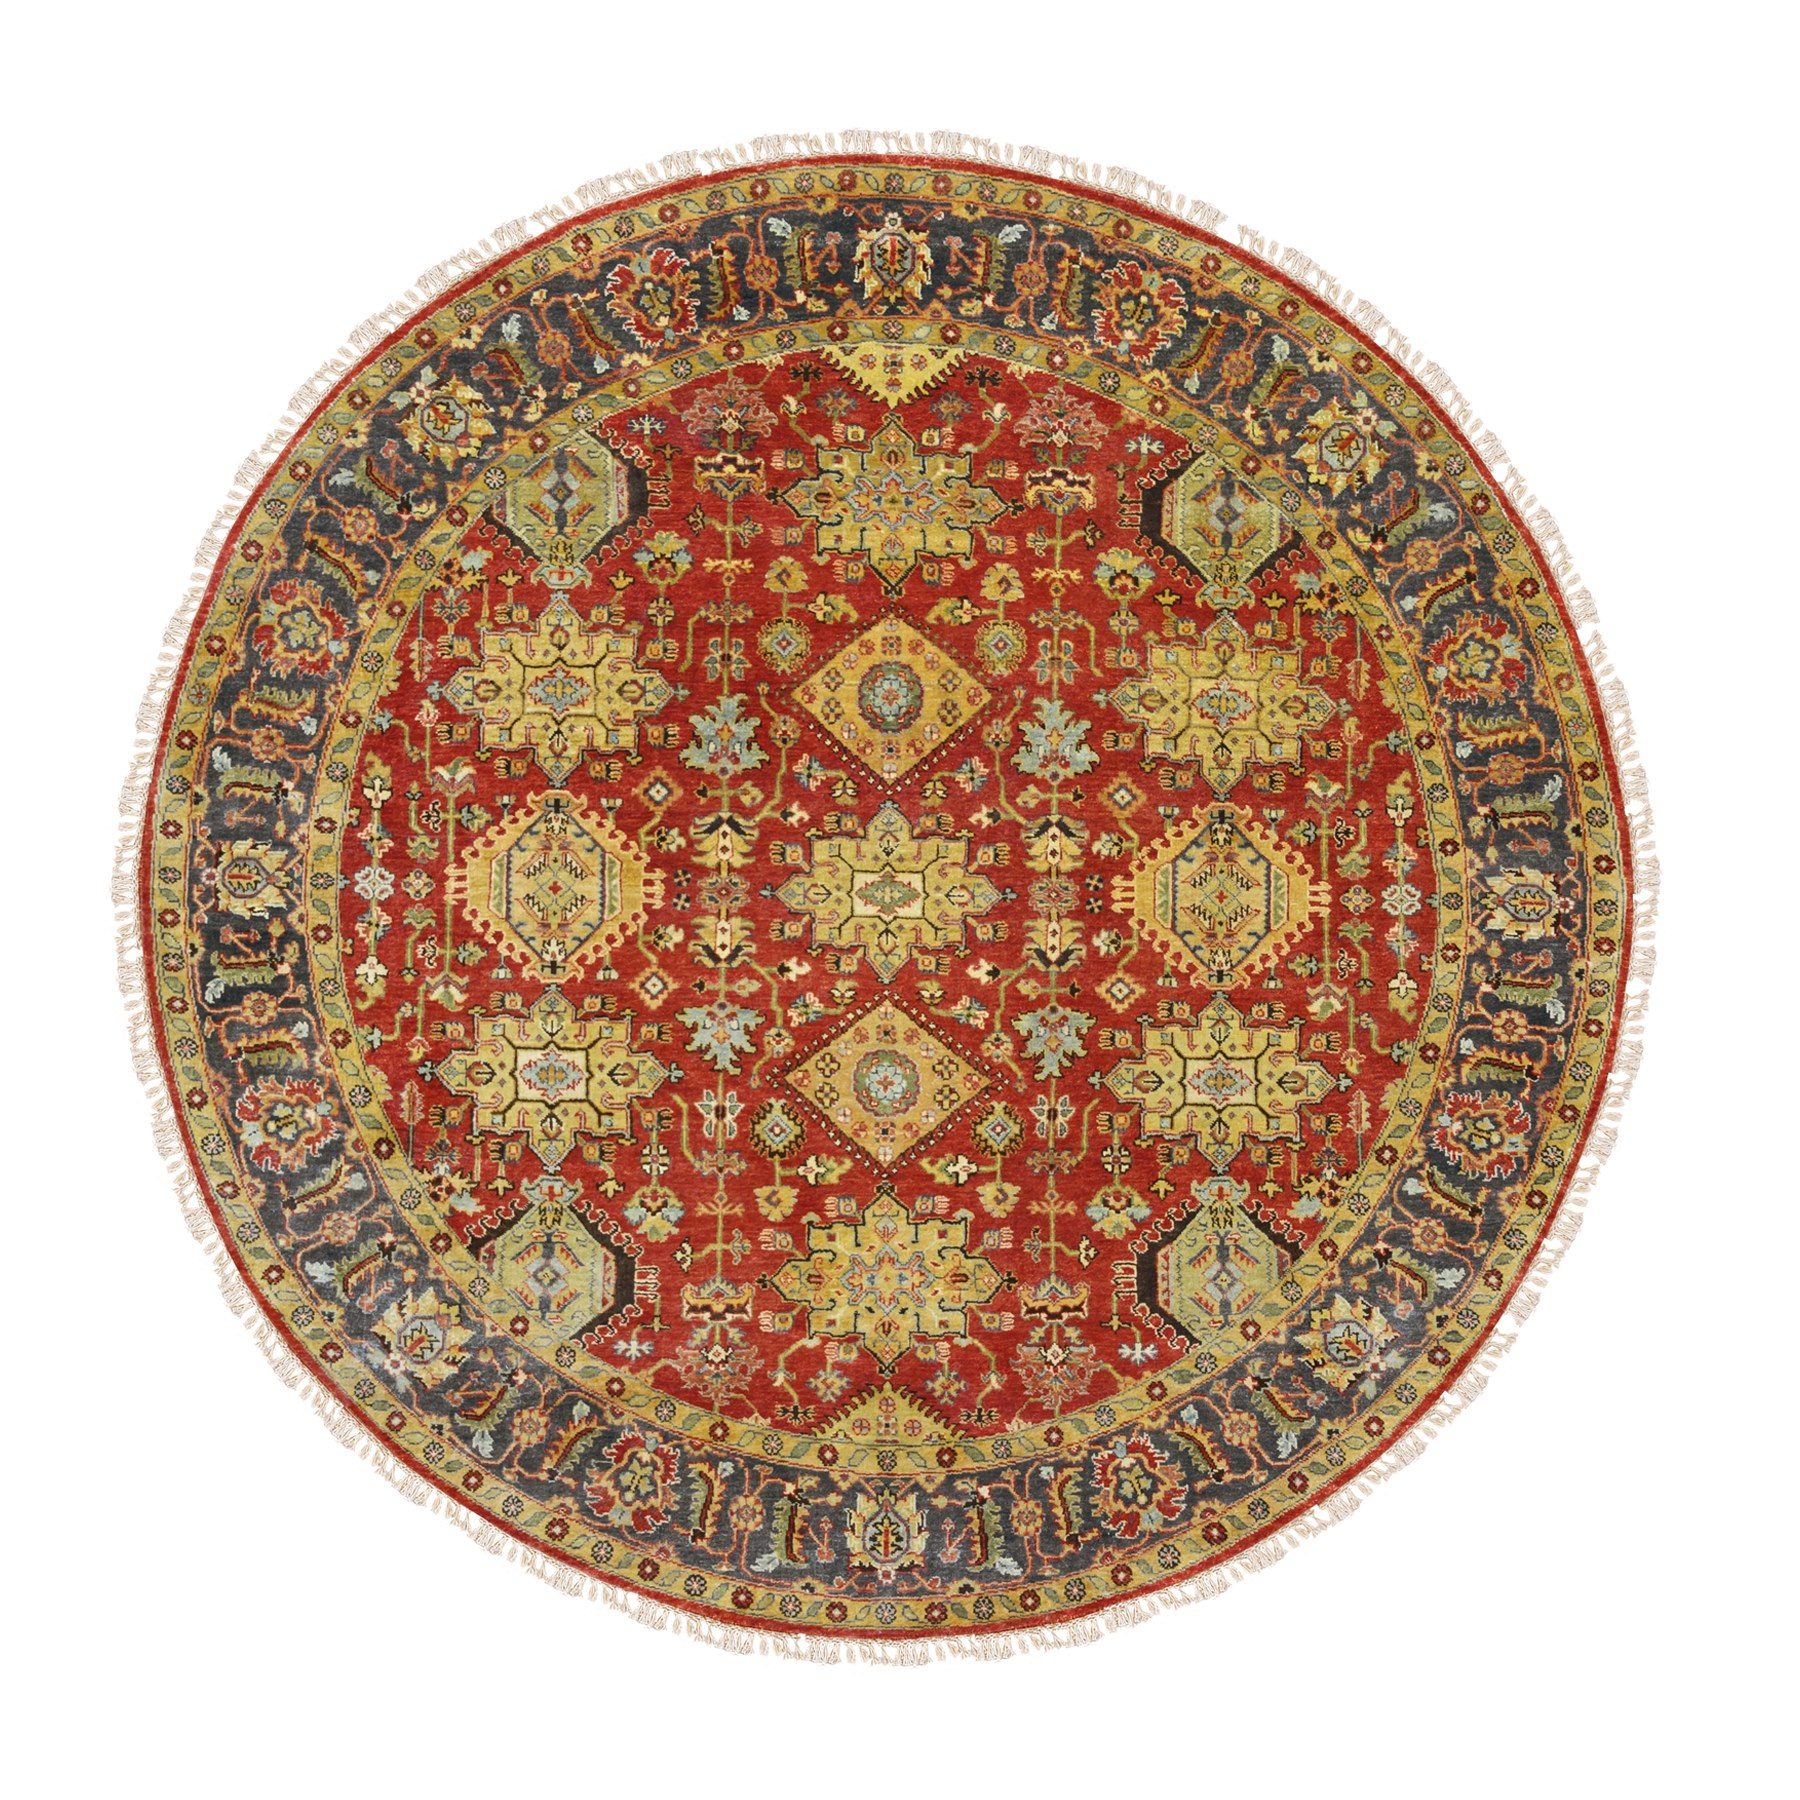 "7'10""x7'10"" Round Red Karajeh Design Pure Wool Hand Knotted Oriental Rug"